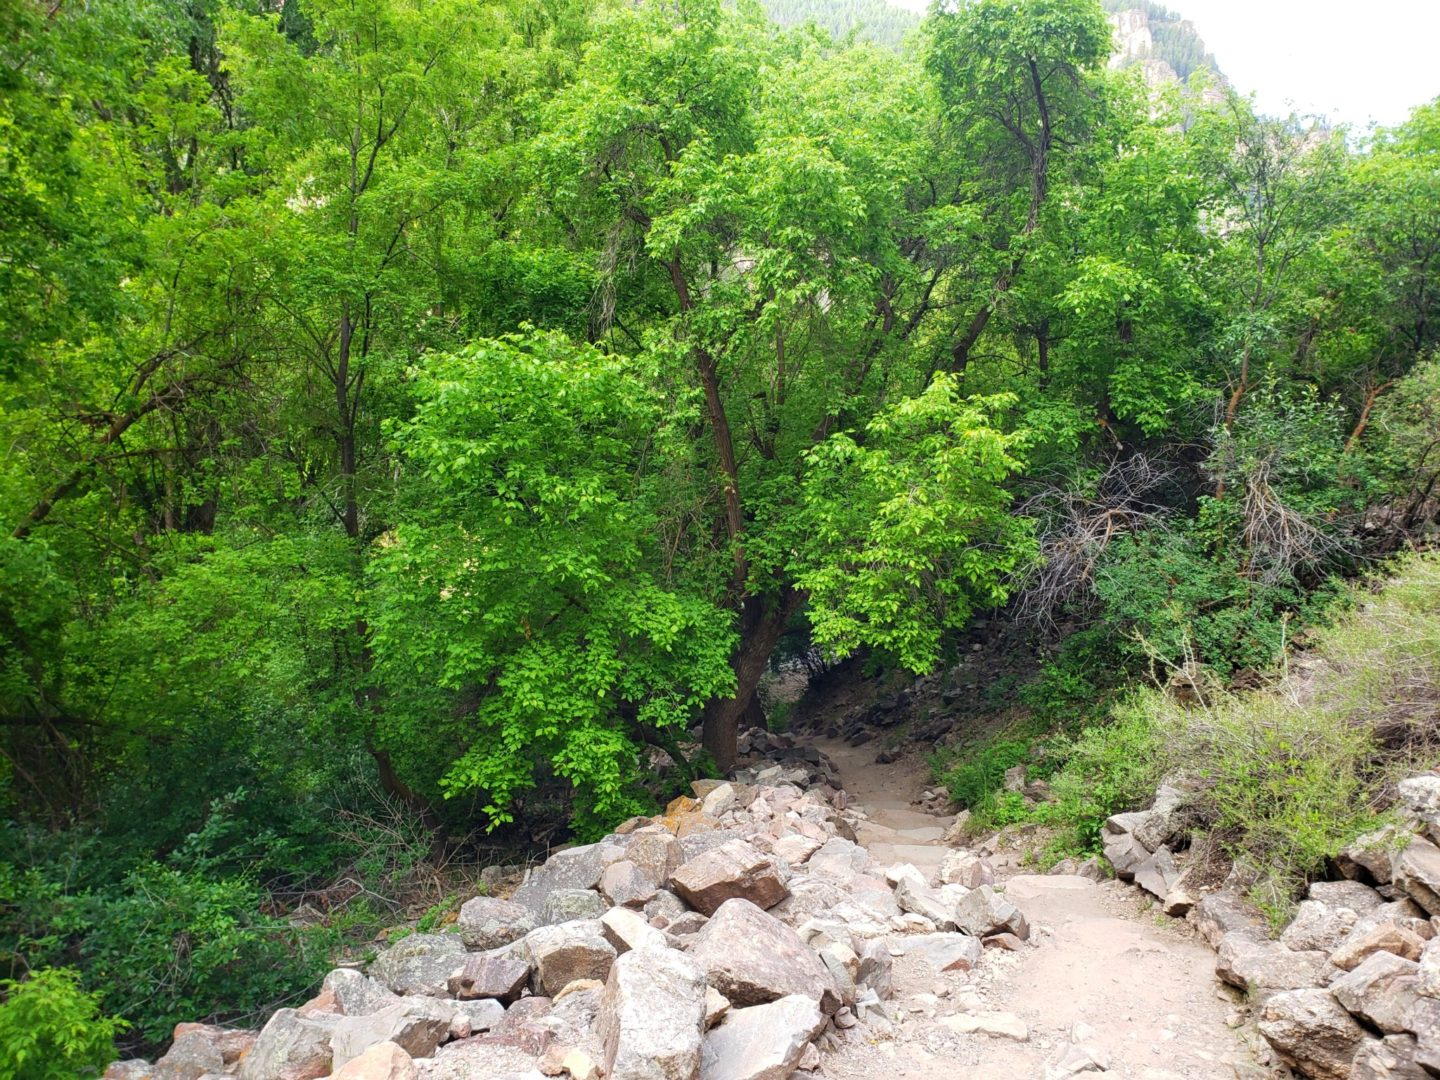 The trail is steep as it climbs up the canyon